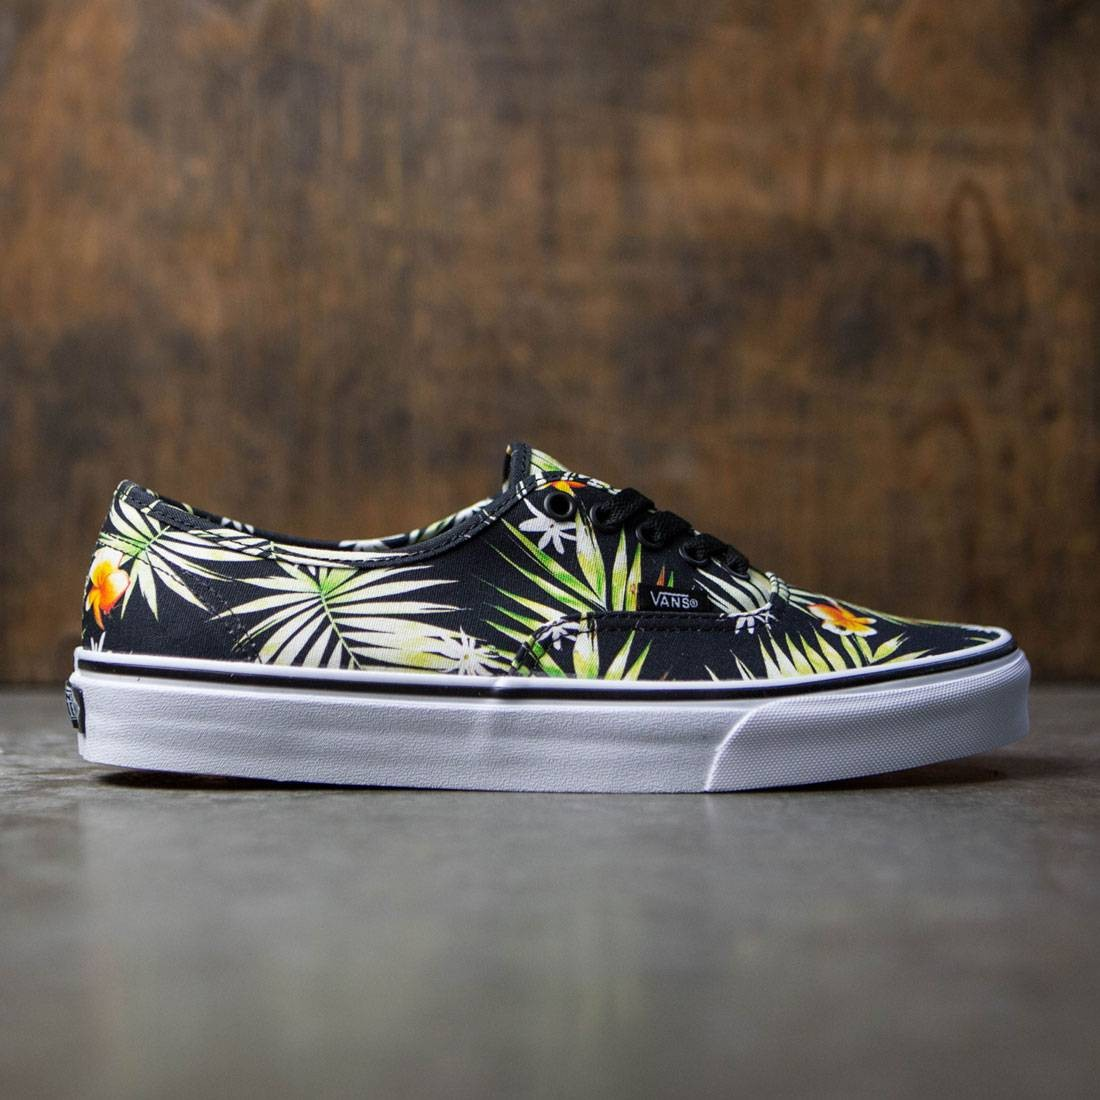 5b74221c23 Vans Men Authentic - Decay Palms black true white